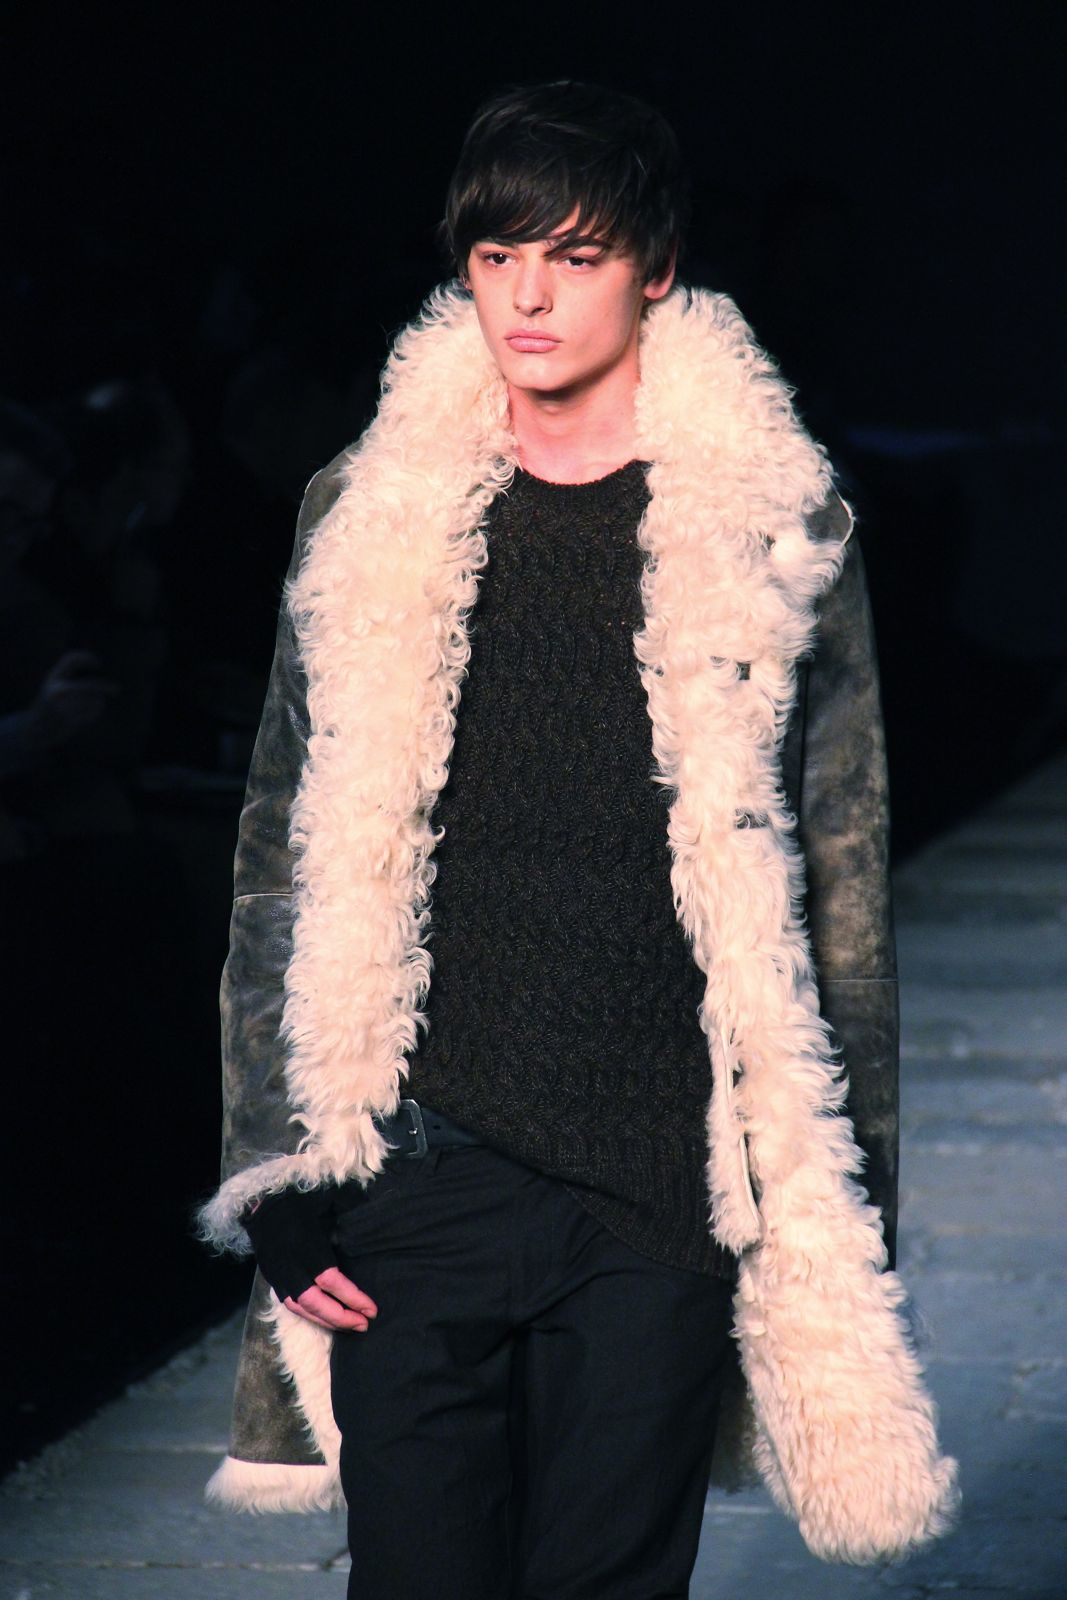 John Varvatos Men's Collection Fall Winter 2012 Milano Fashion Week